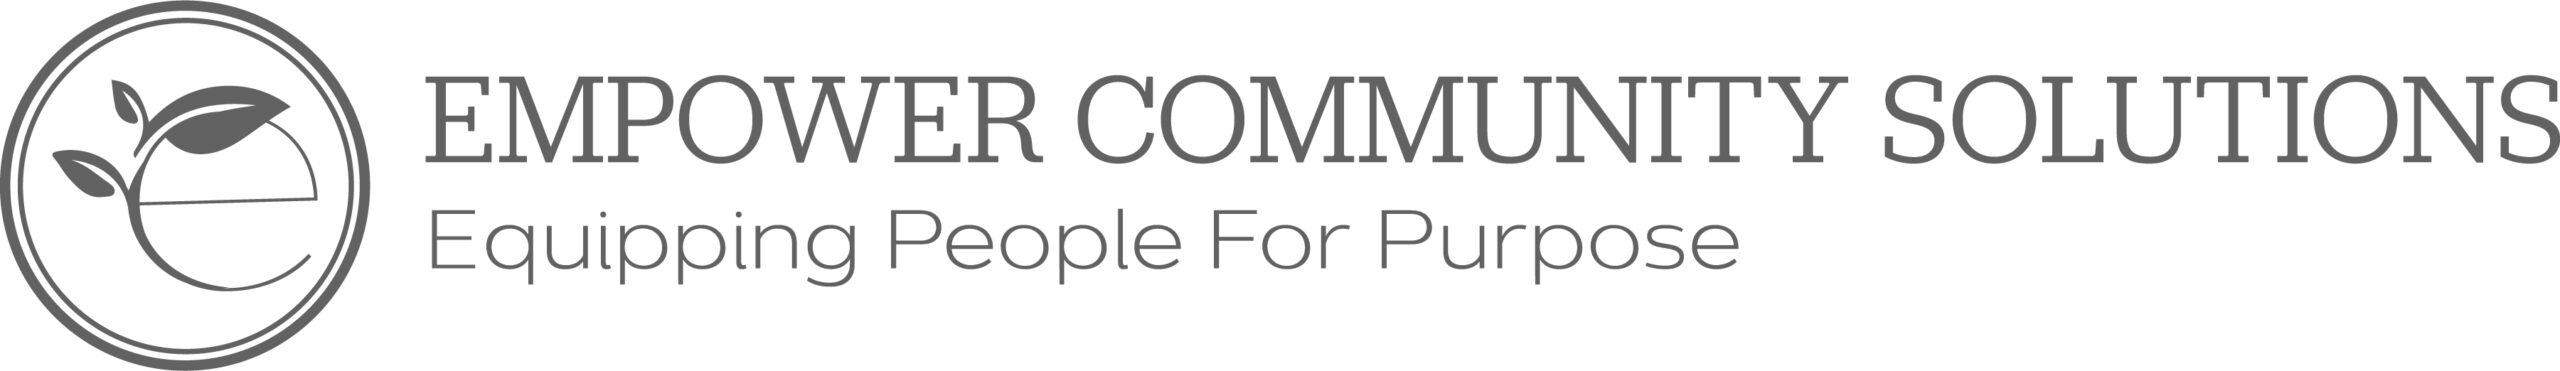 Empower Community Solutions